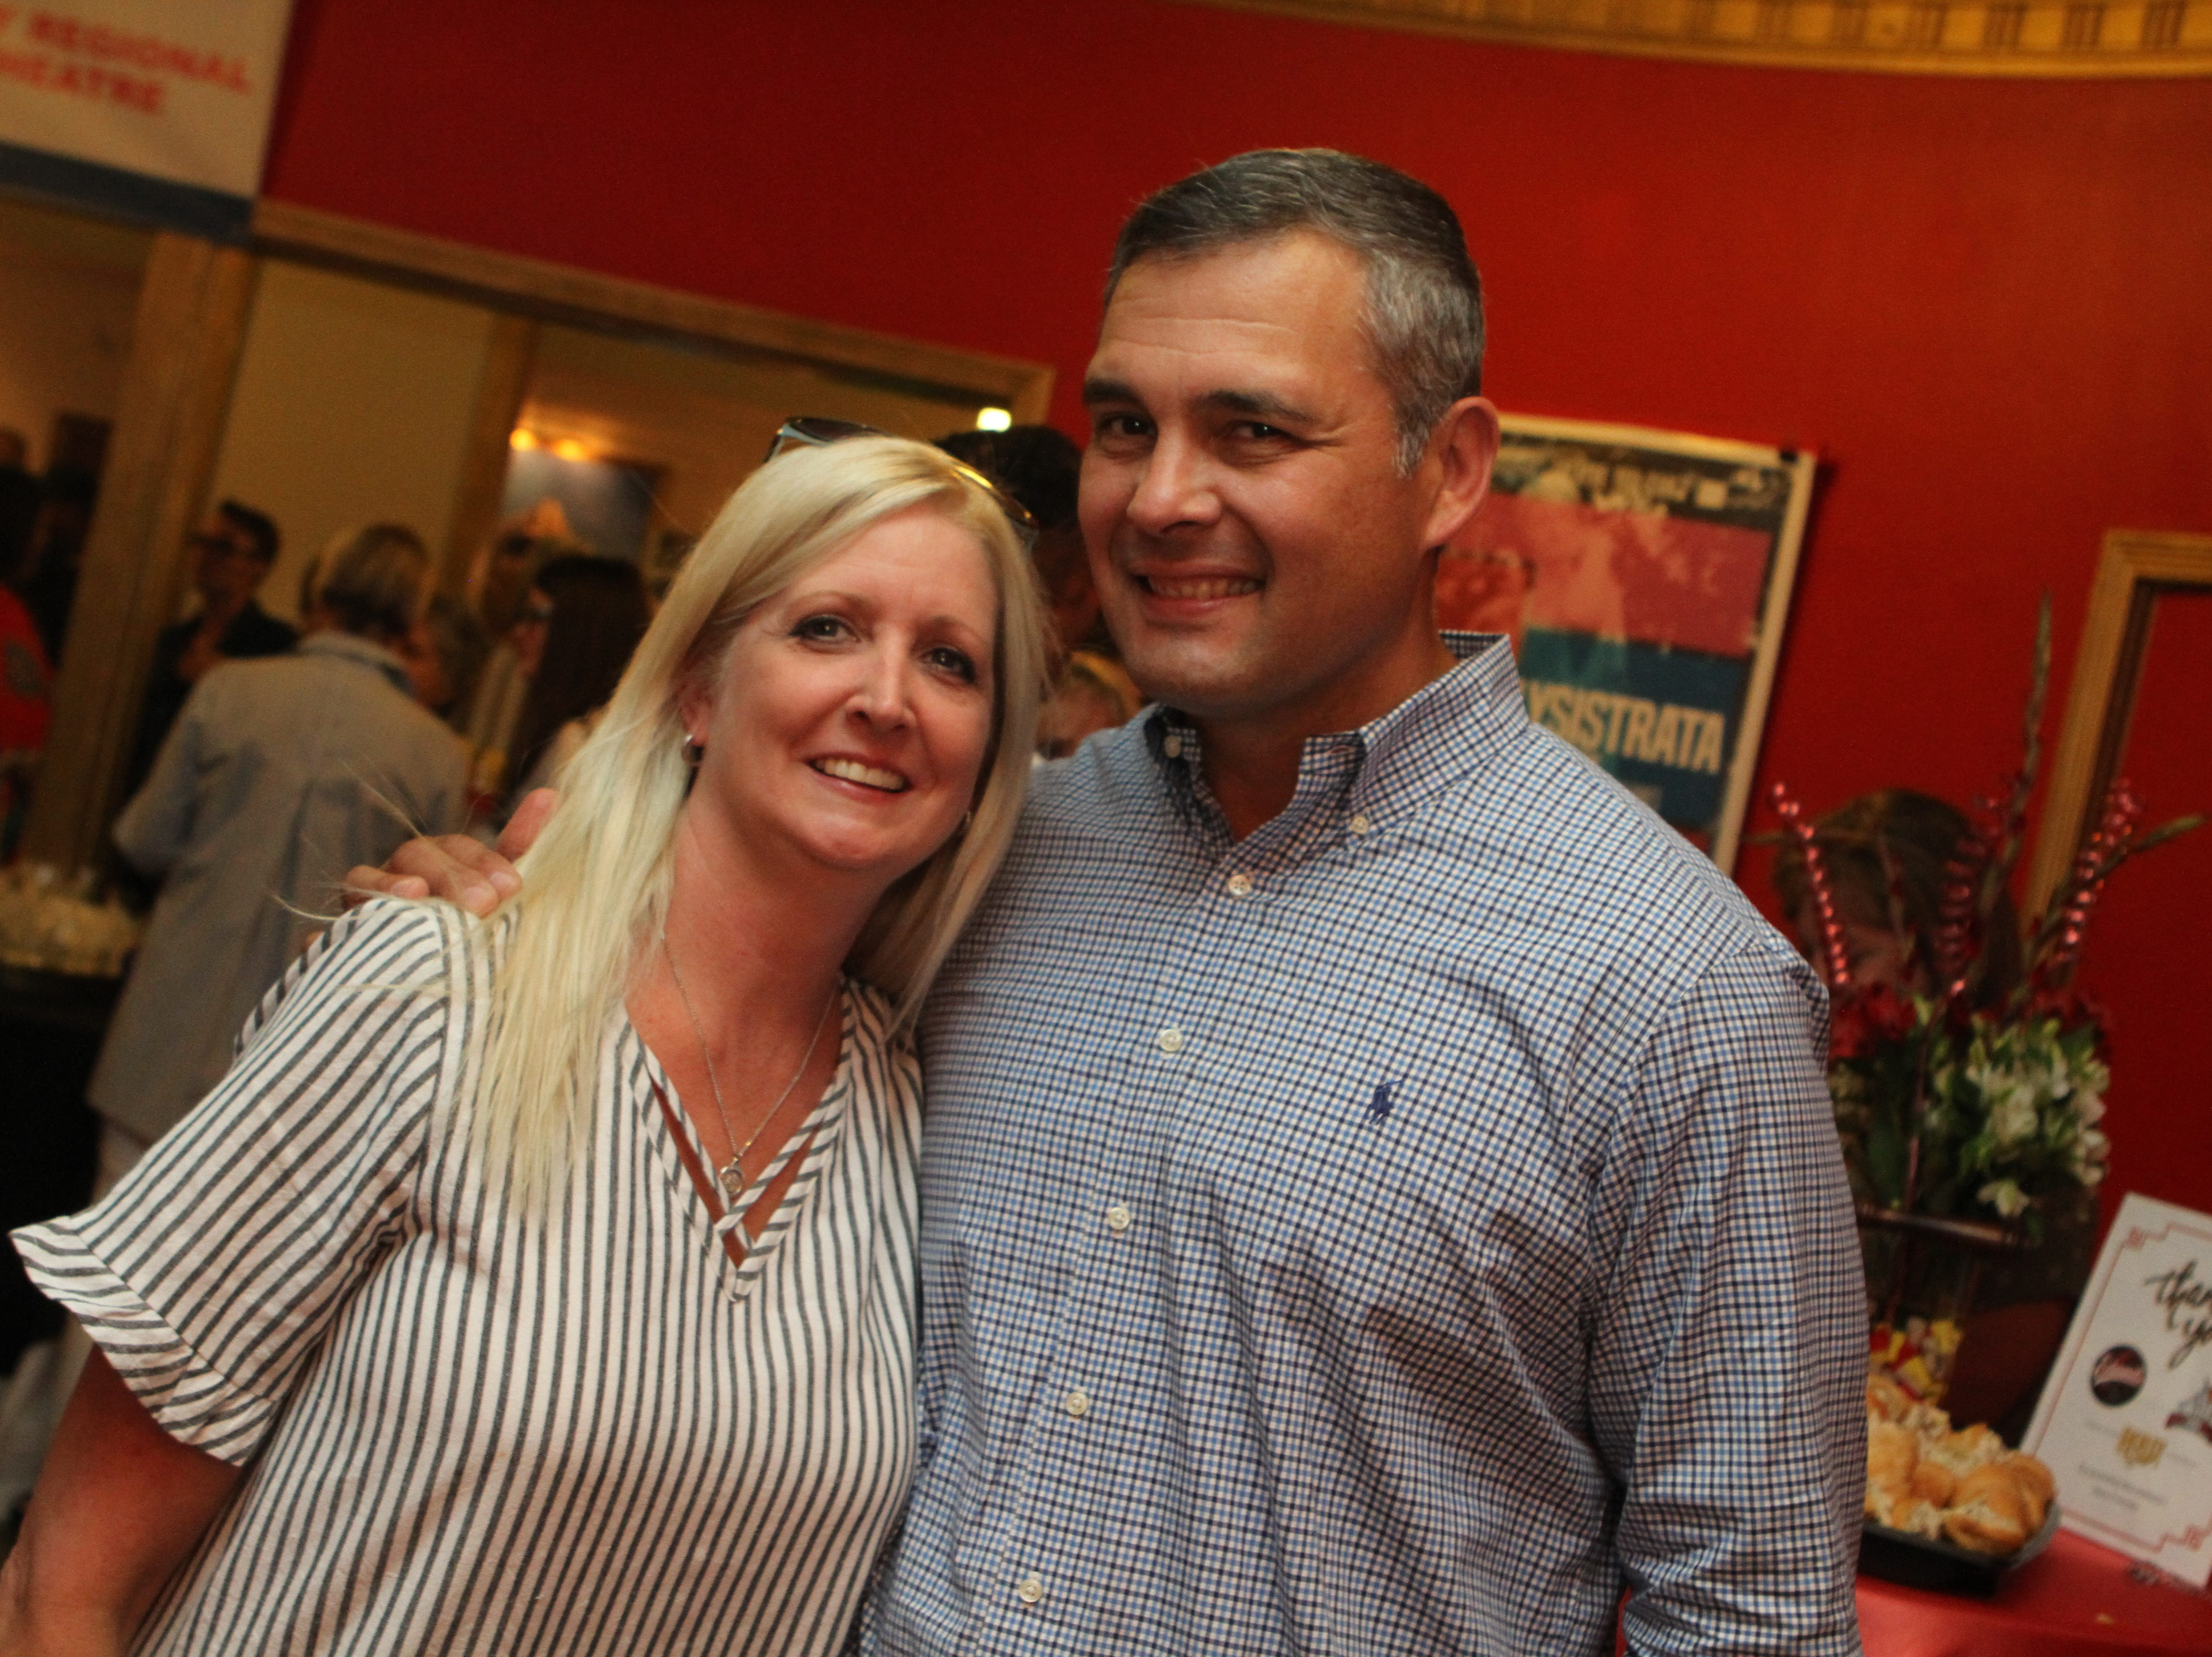 Andrea and Sal Herrera at the Roxy Regional Theatre for the United Way 2018 campaign fundraising event Thursday night.